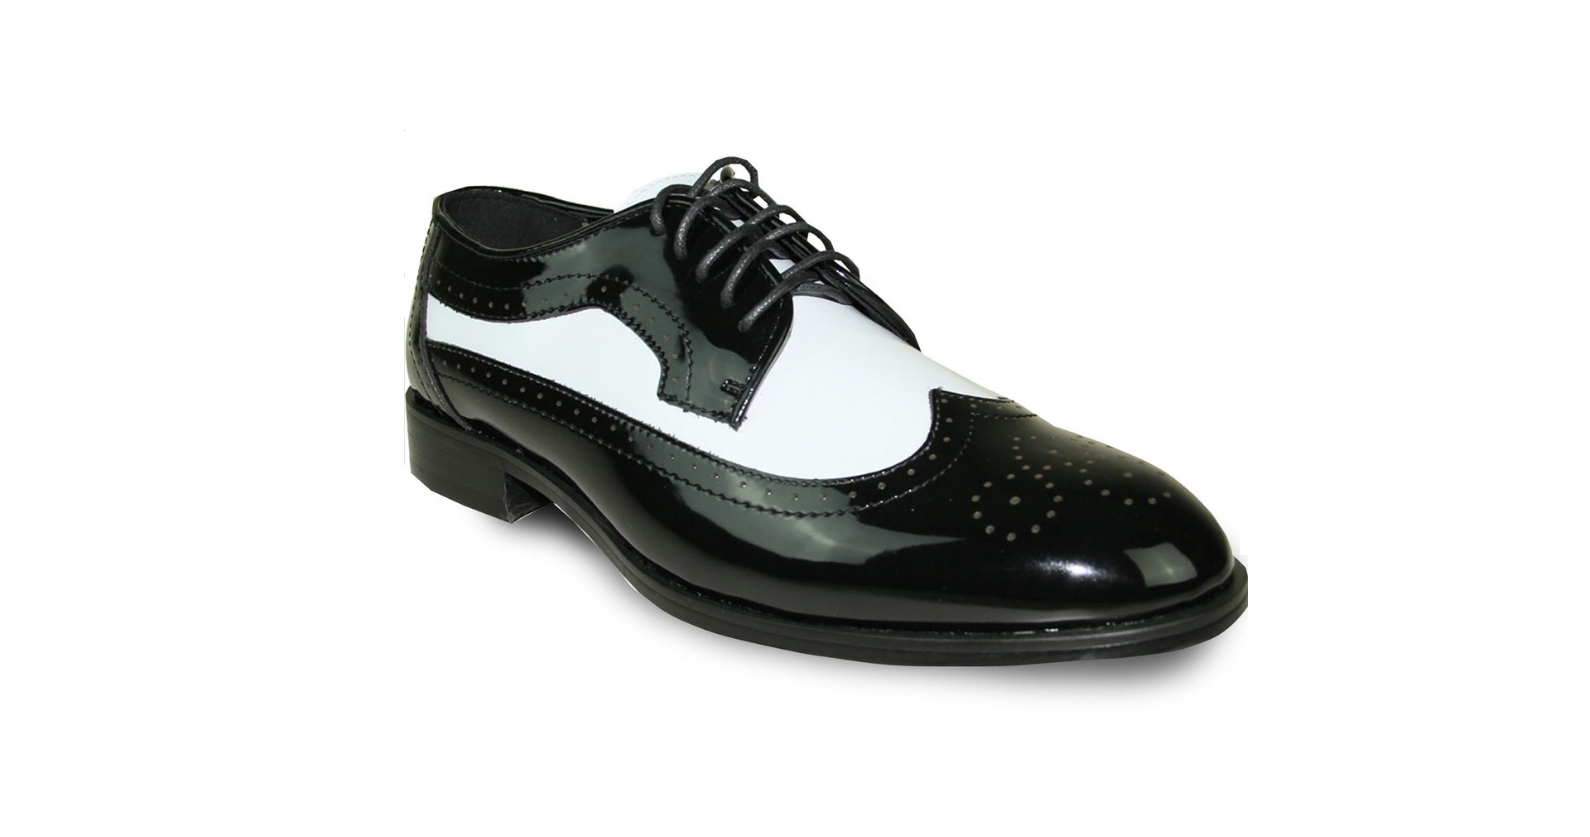 Mens Two-Tone Black White Wing Tip Oxford Dress Shoes Lace Up Zoot TUXXMAN